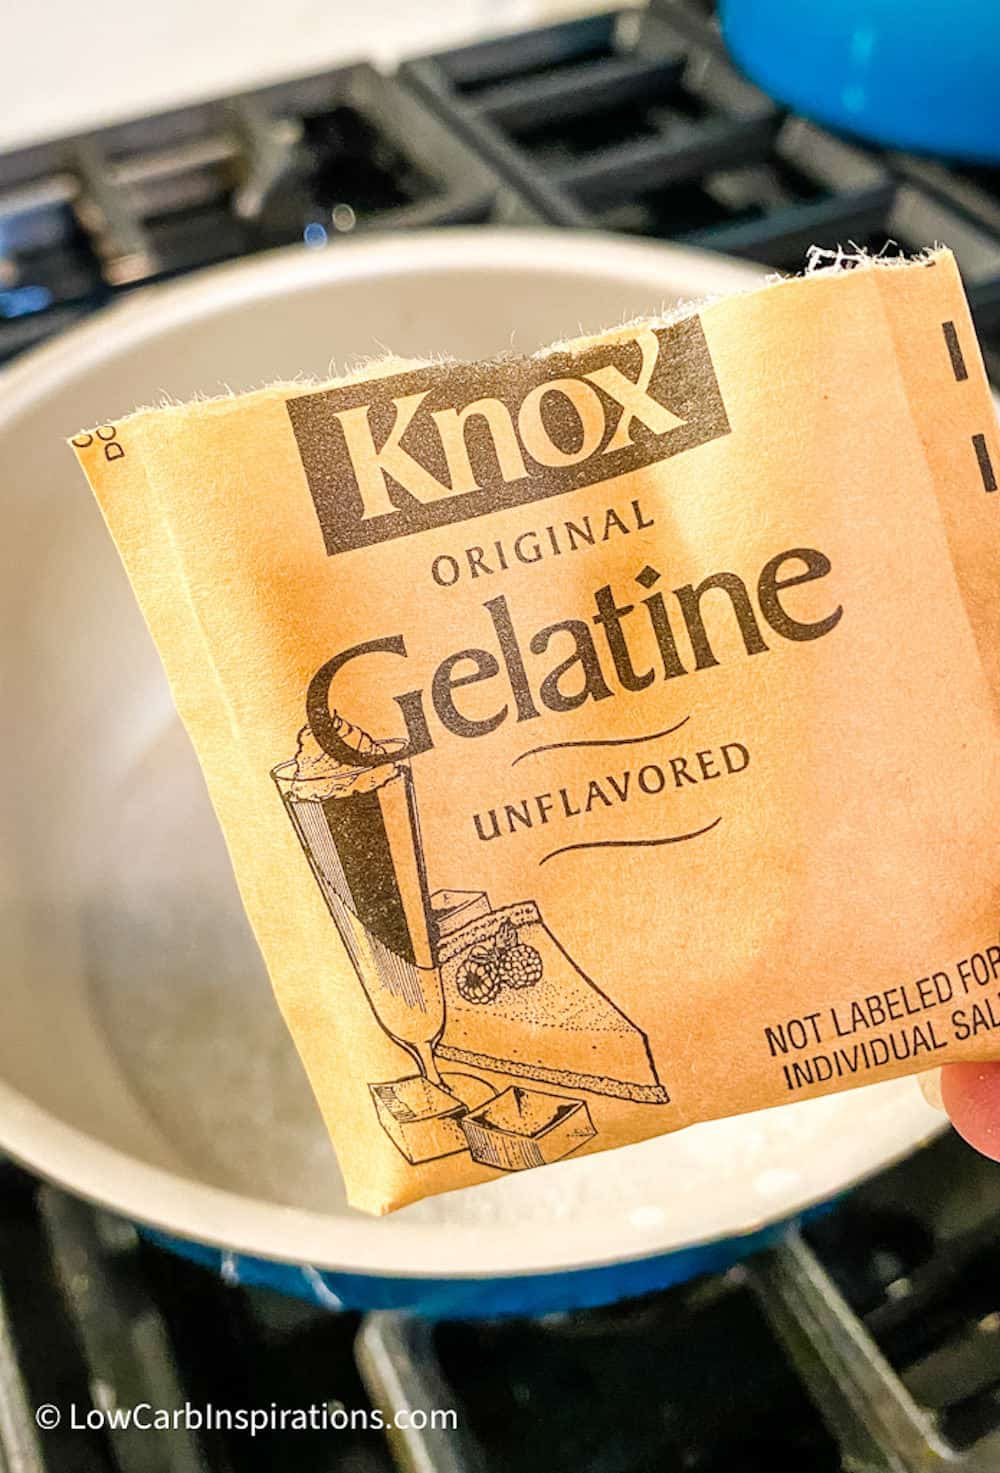 Knox gelatin packet with a sauce pan in the back of the photo